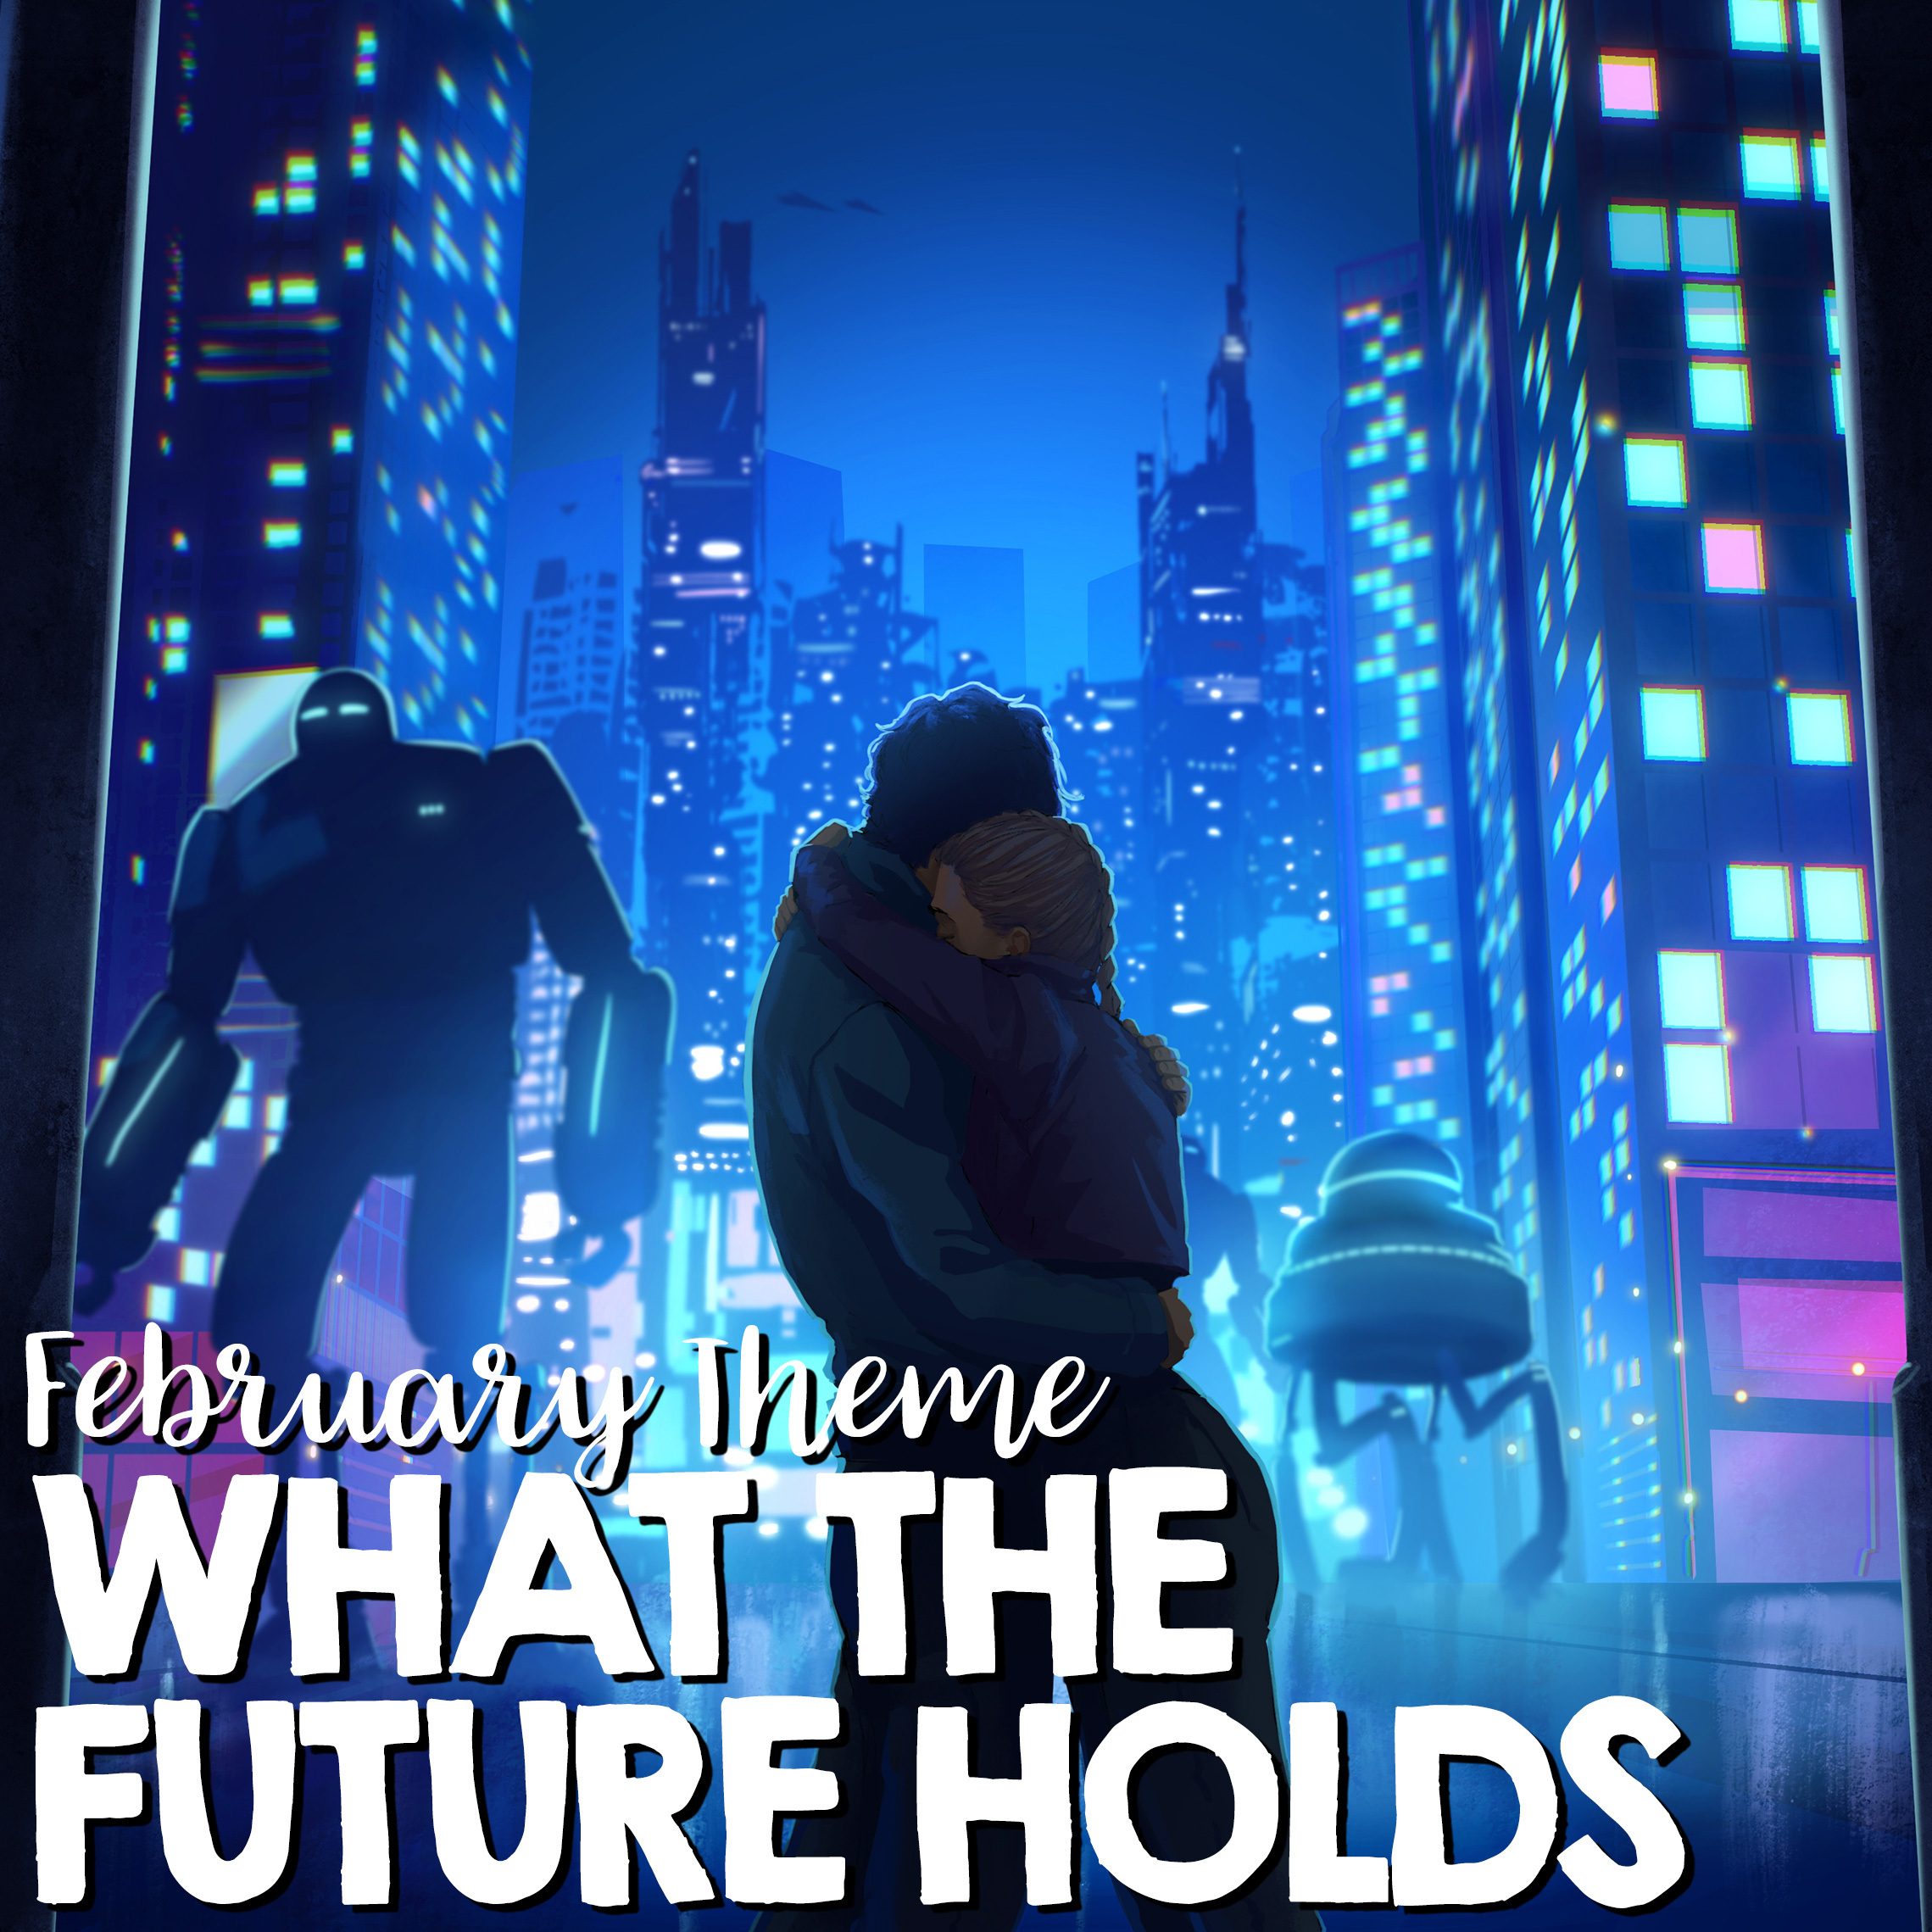 February Theme: WHAT THE FUTURE HOLDS